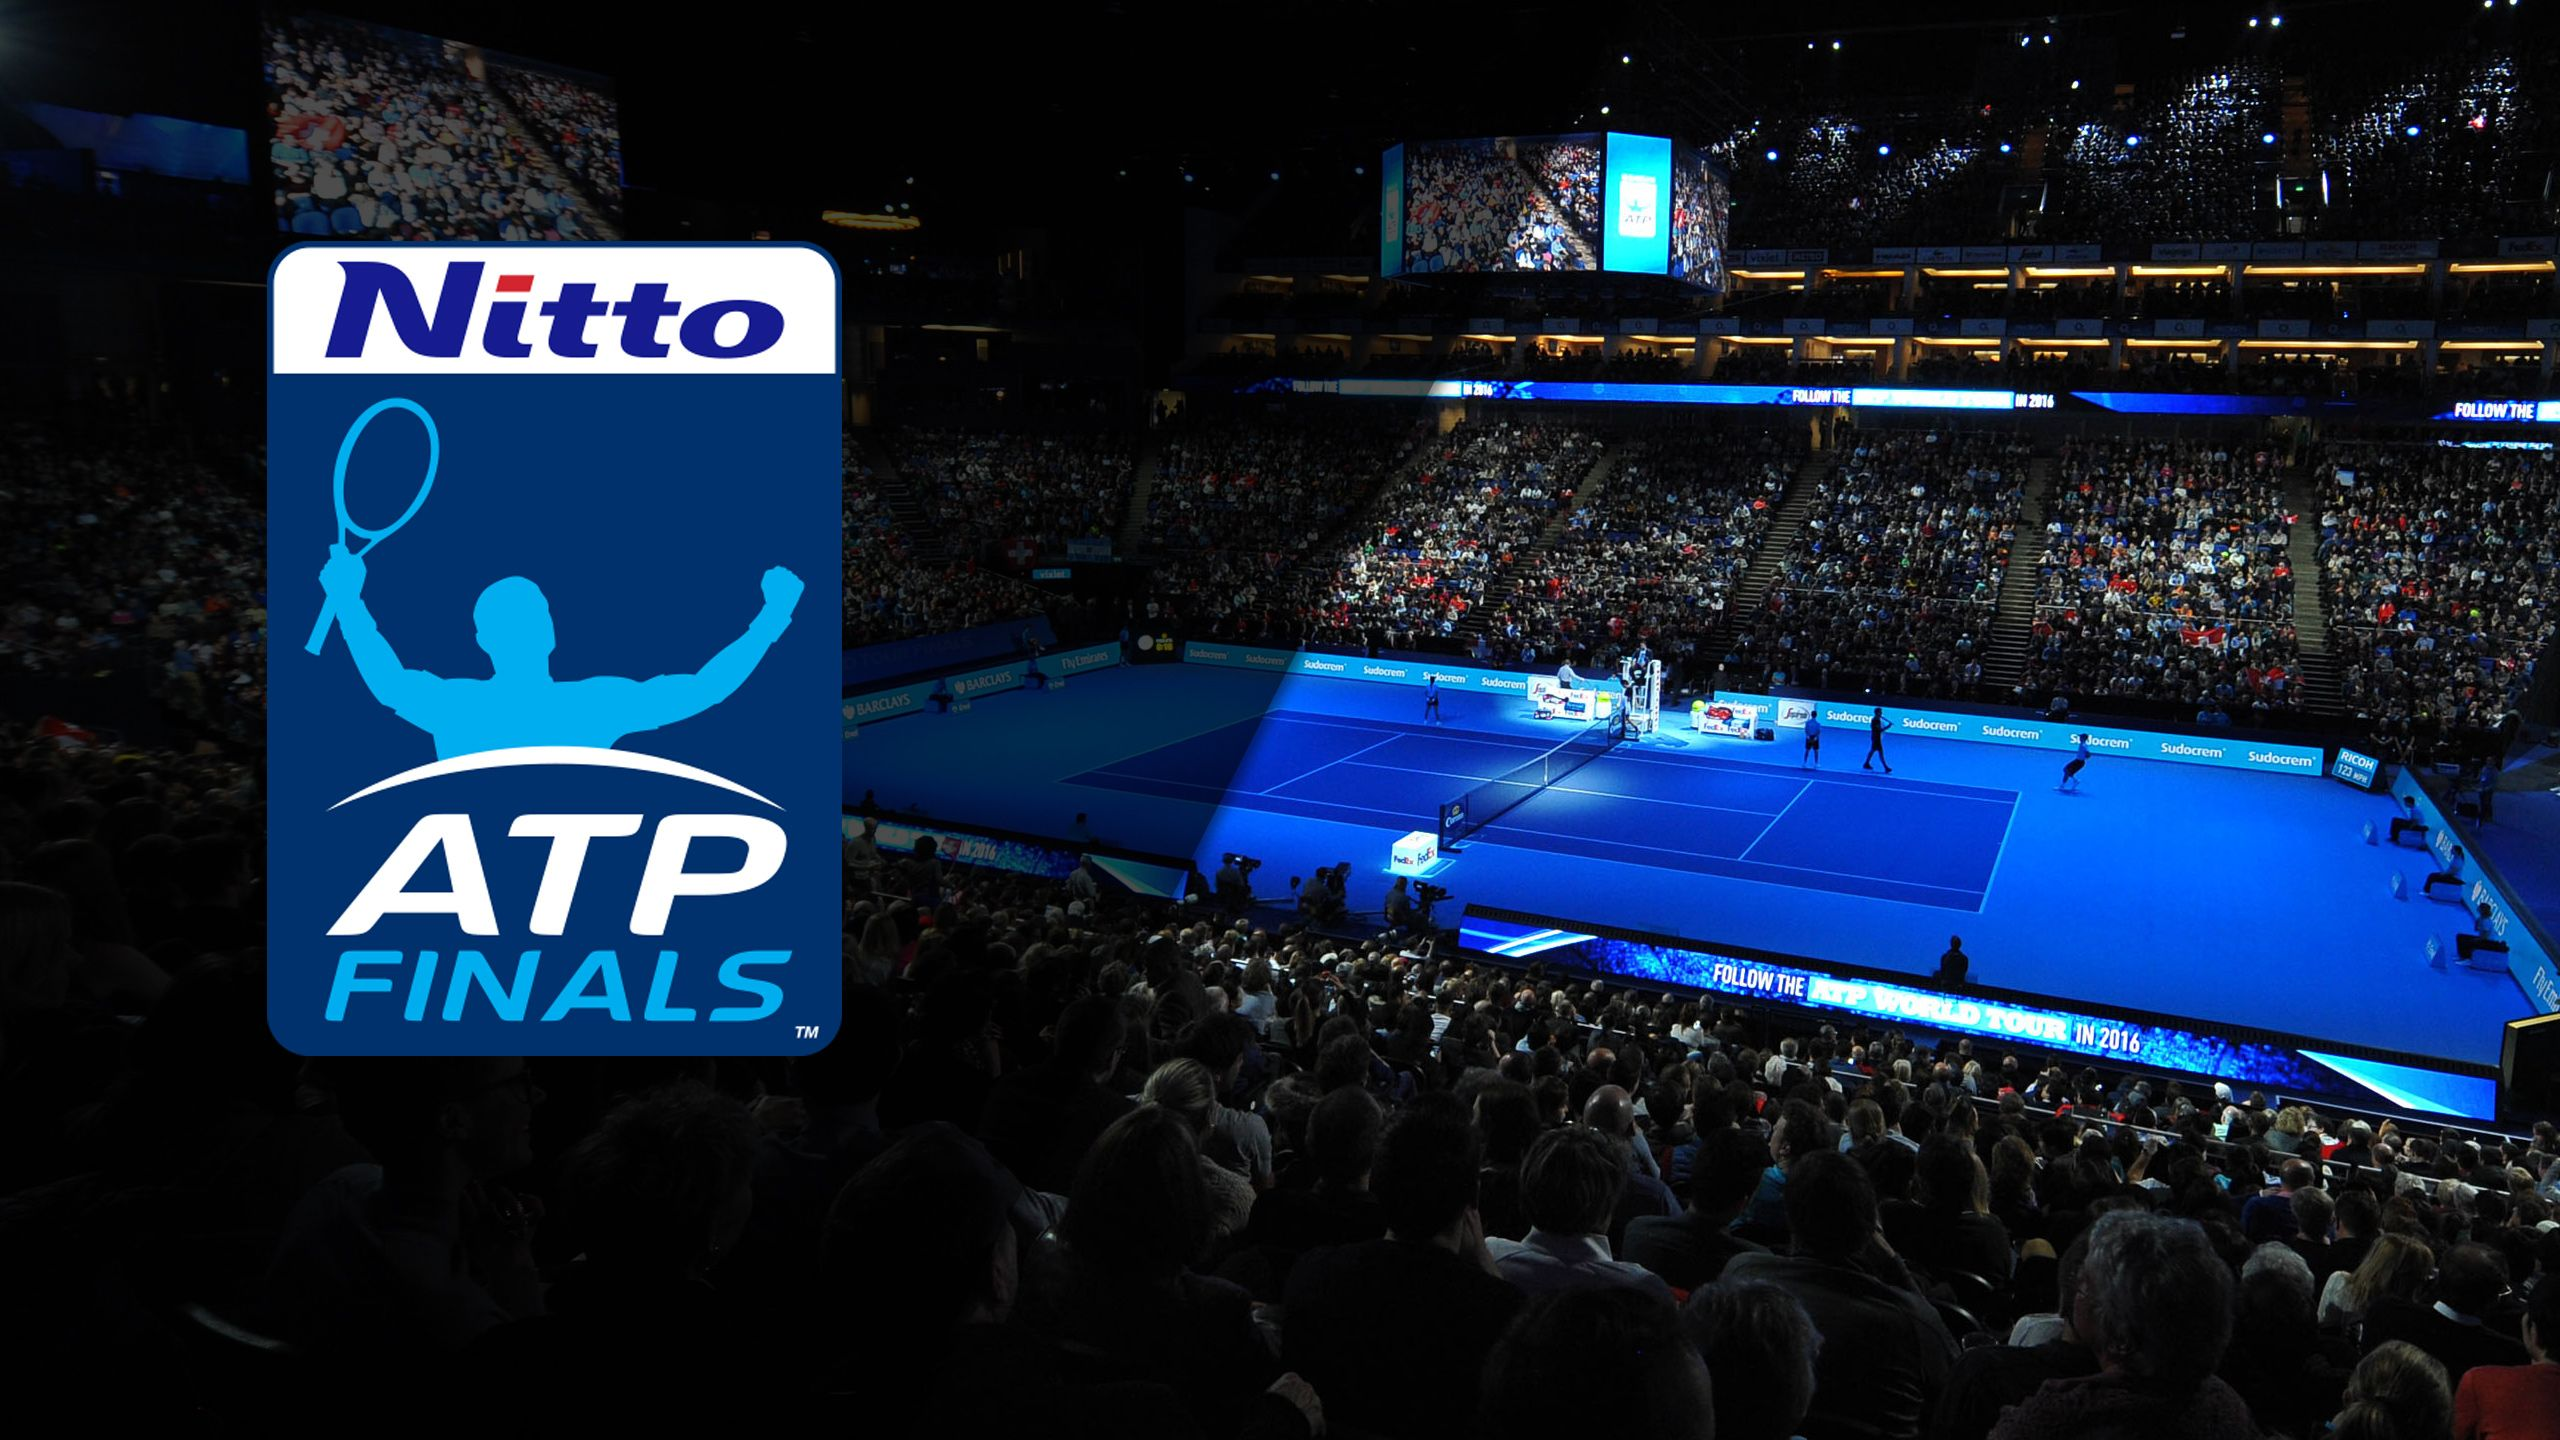 L. Kubot/M. Melo vs. H. Kontinen/J. Peers - Nitto ATP Finals (Doubles Championship)